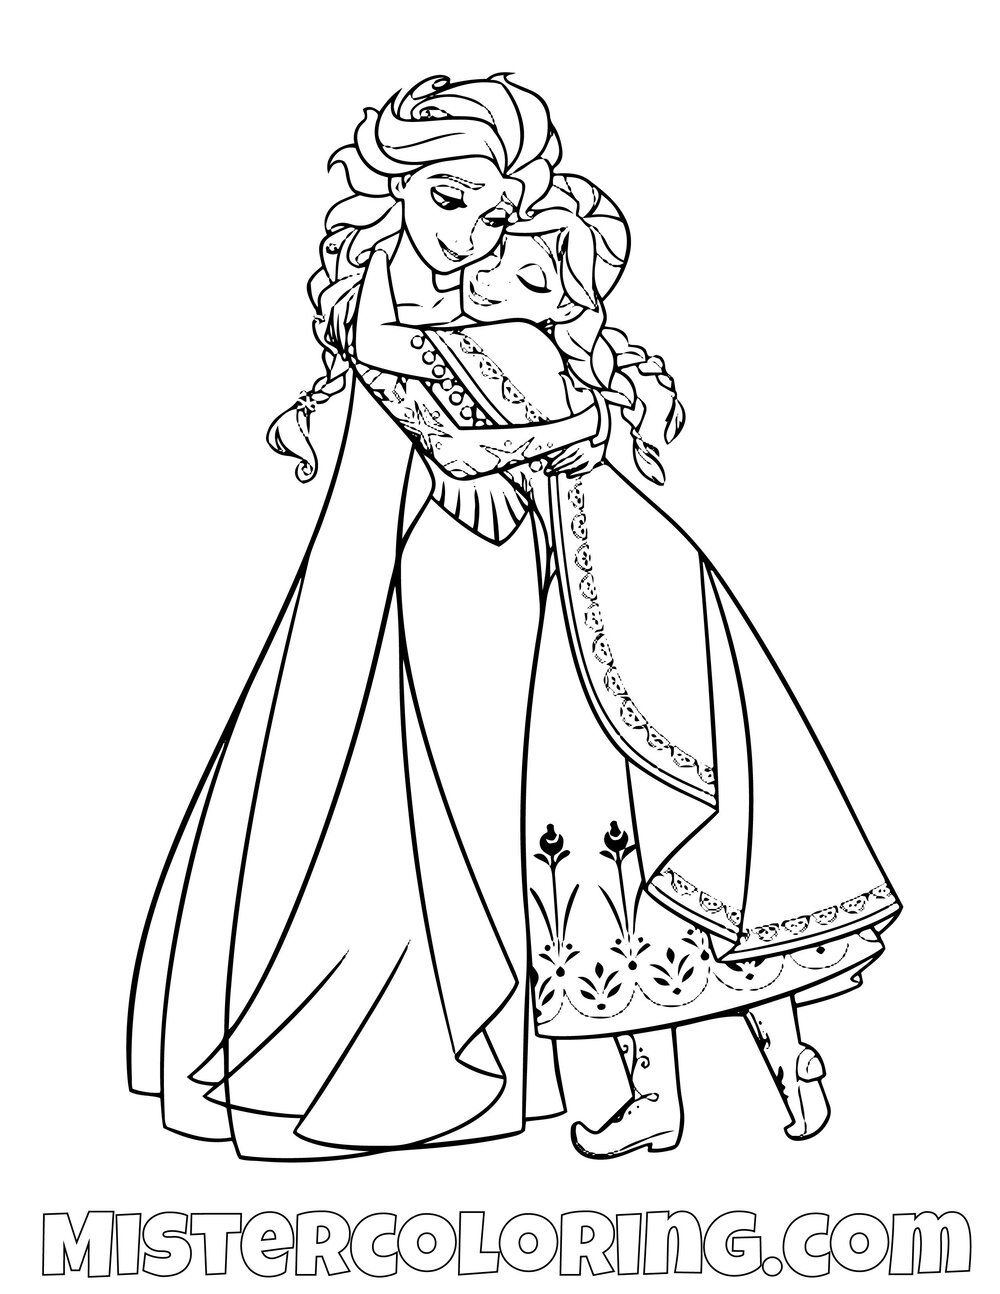 Queen Elsa And Princess Anna Hugging 2 Frozen 2 Coloring Pages For Kids Ausmalbilder Anna Und Elsa Lustige Malvorlagen Ausmalbilder Kinder